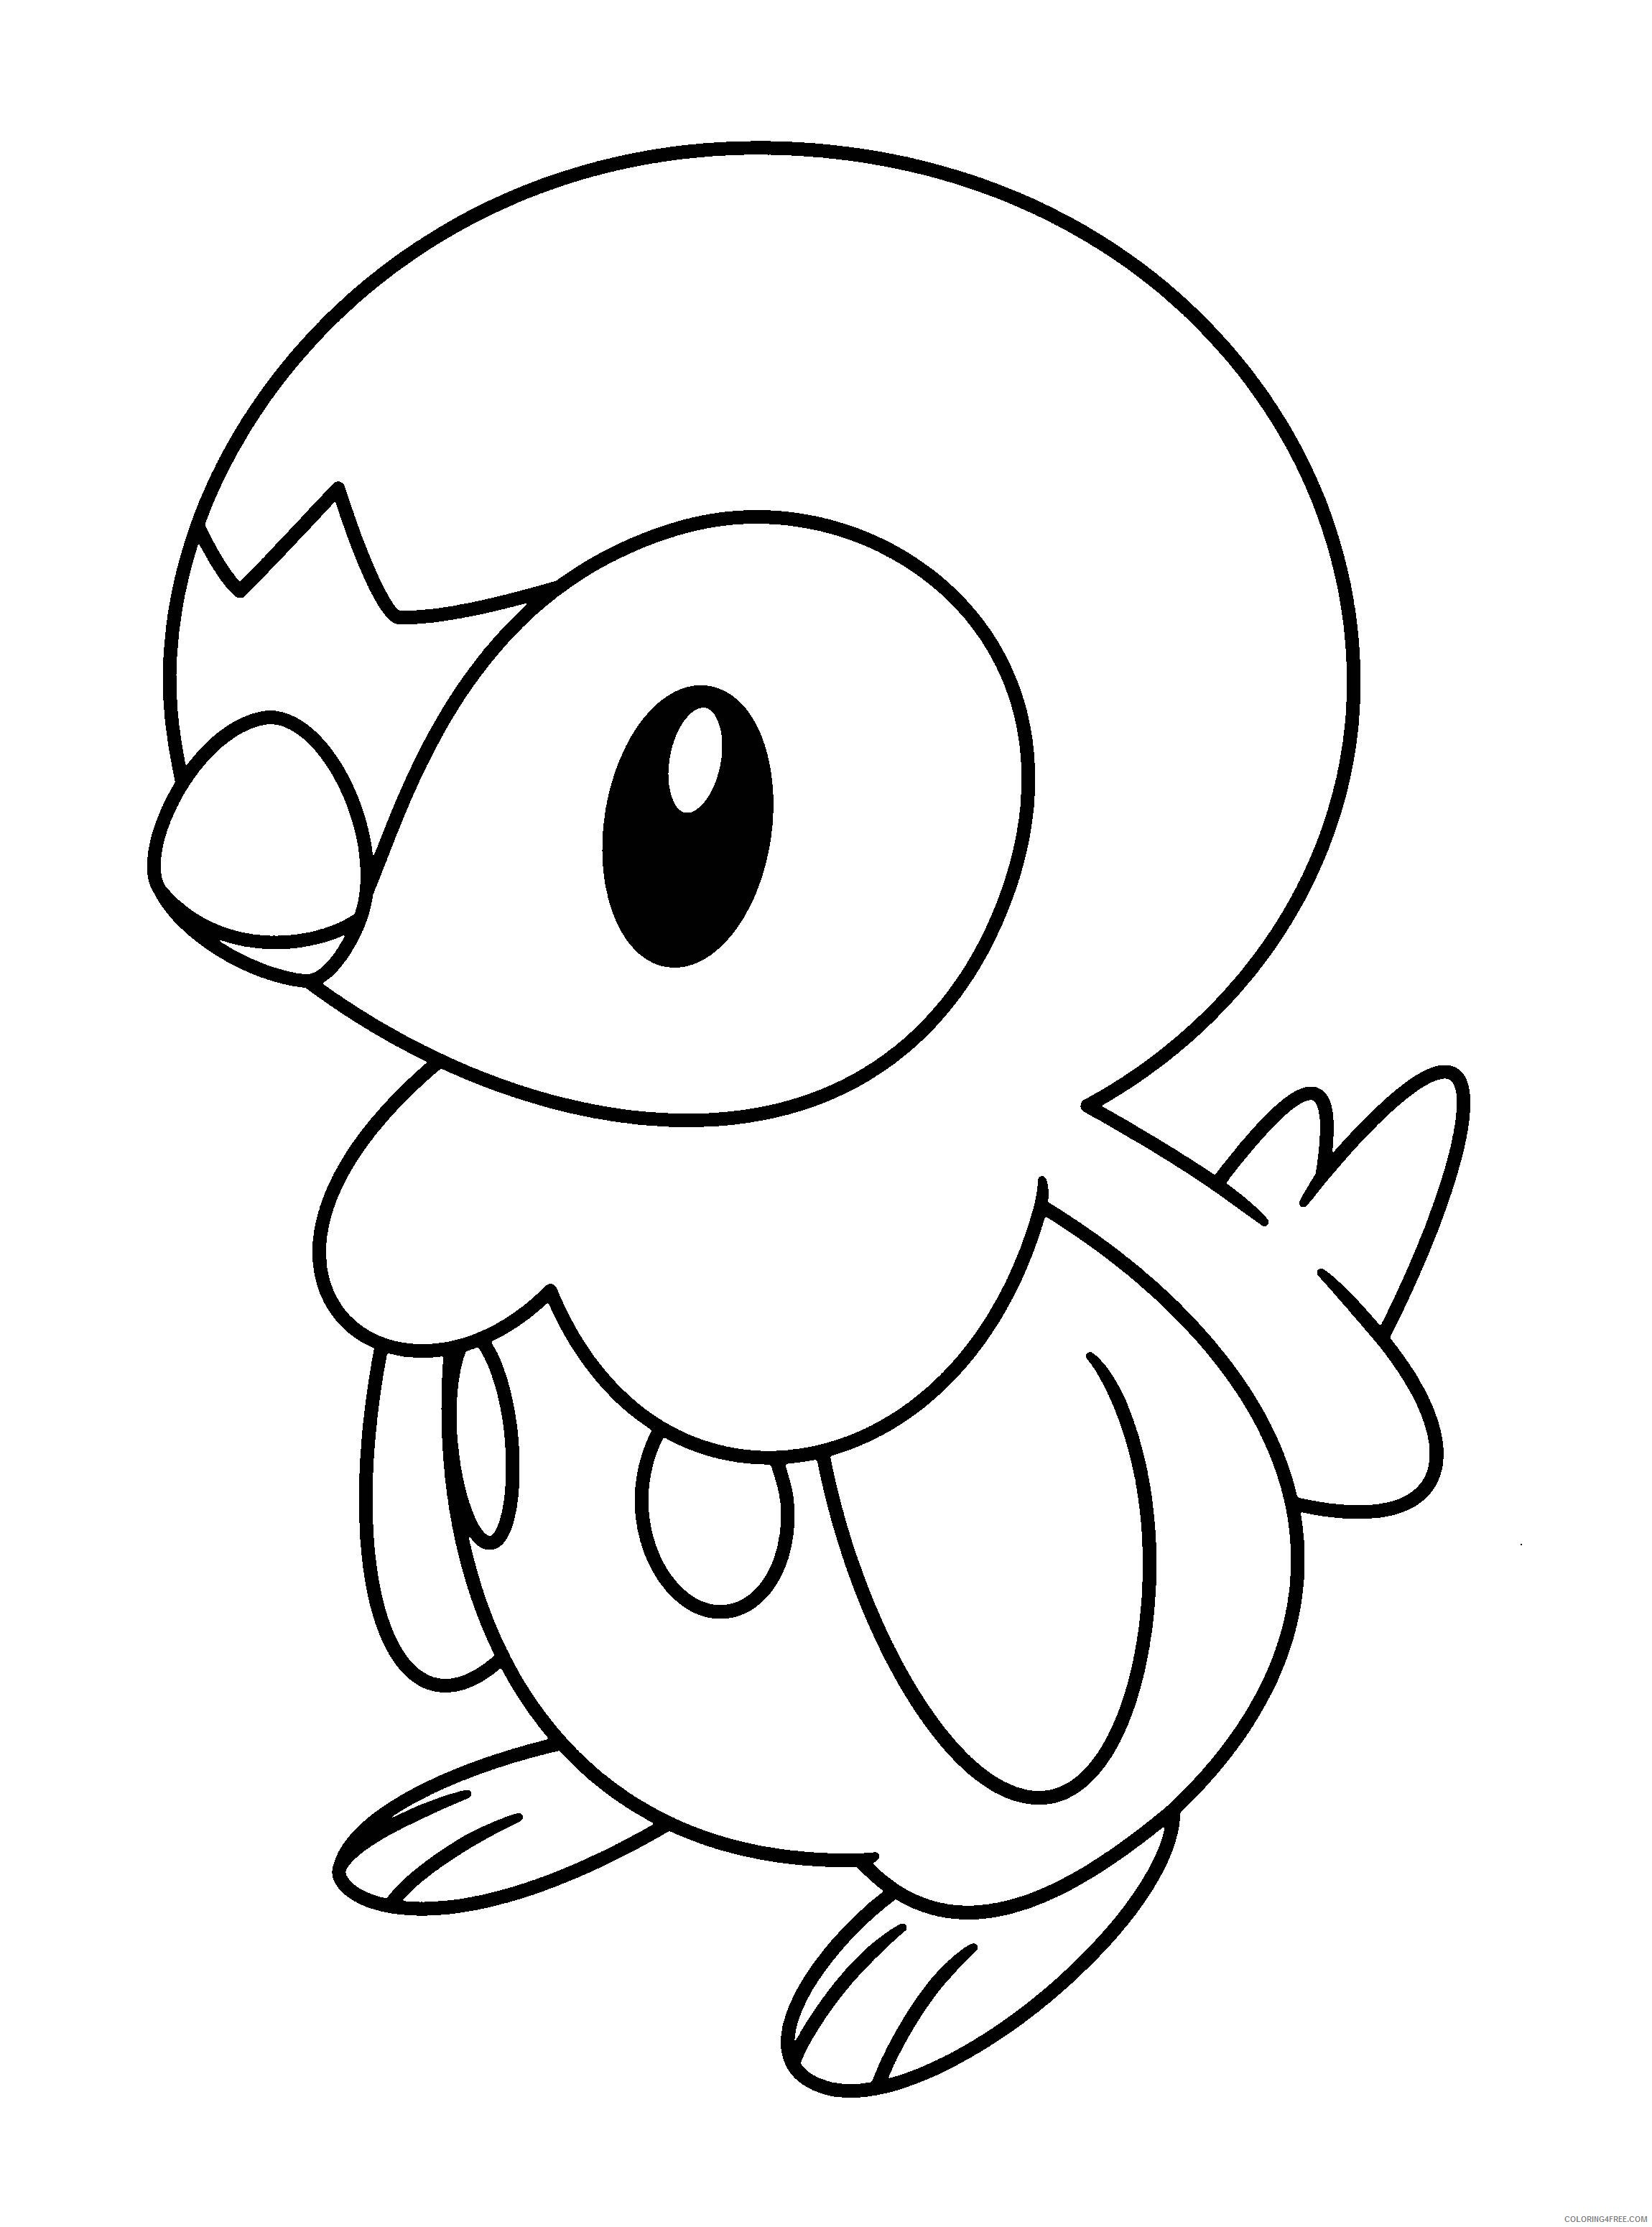 pokemon coloring pages for kids Coloring4free